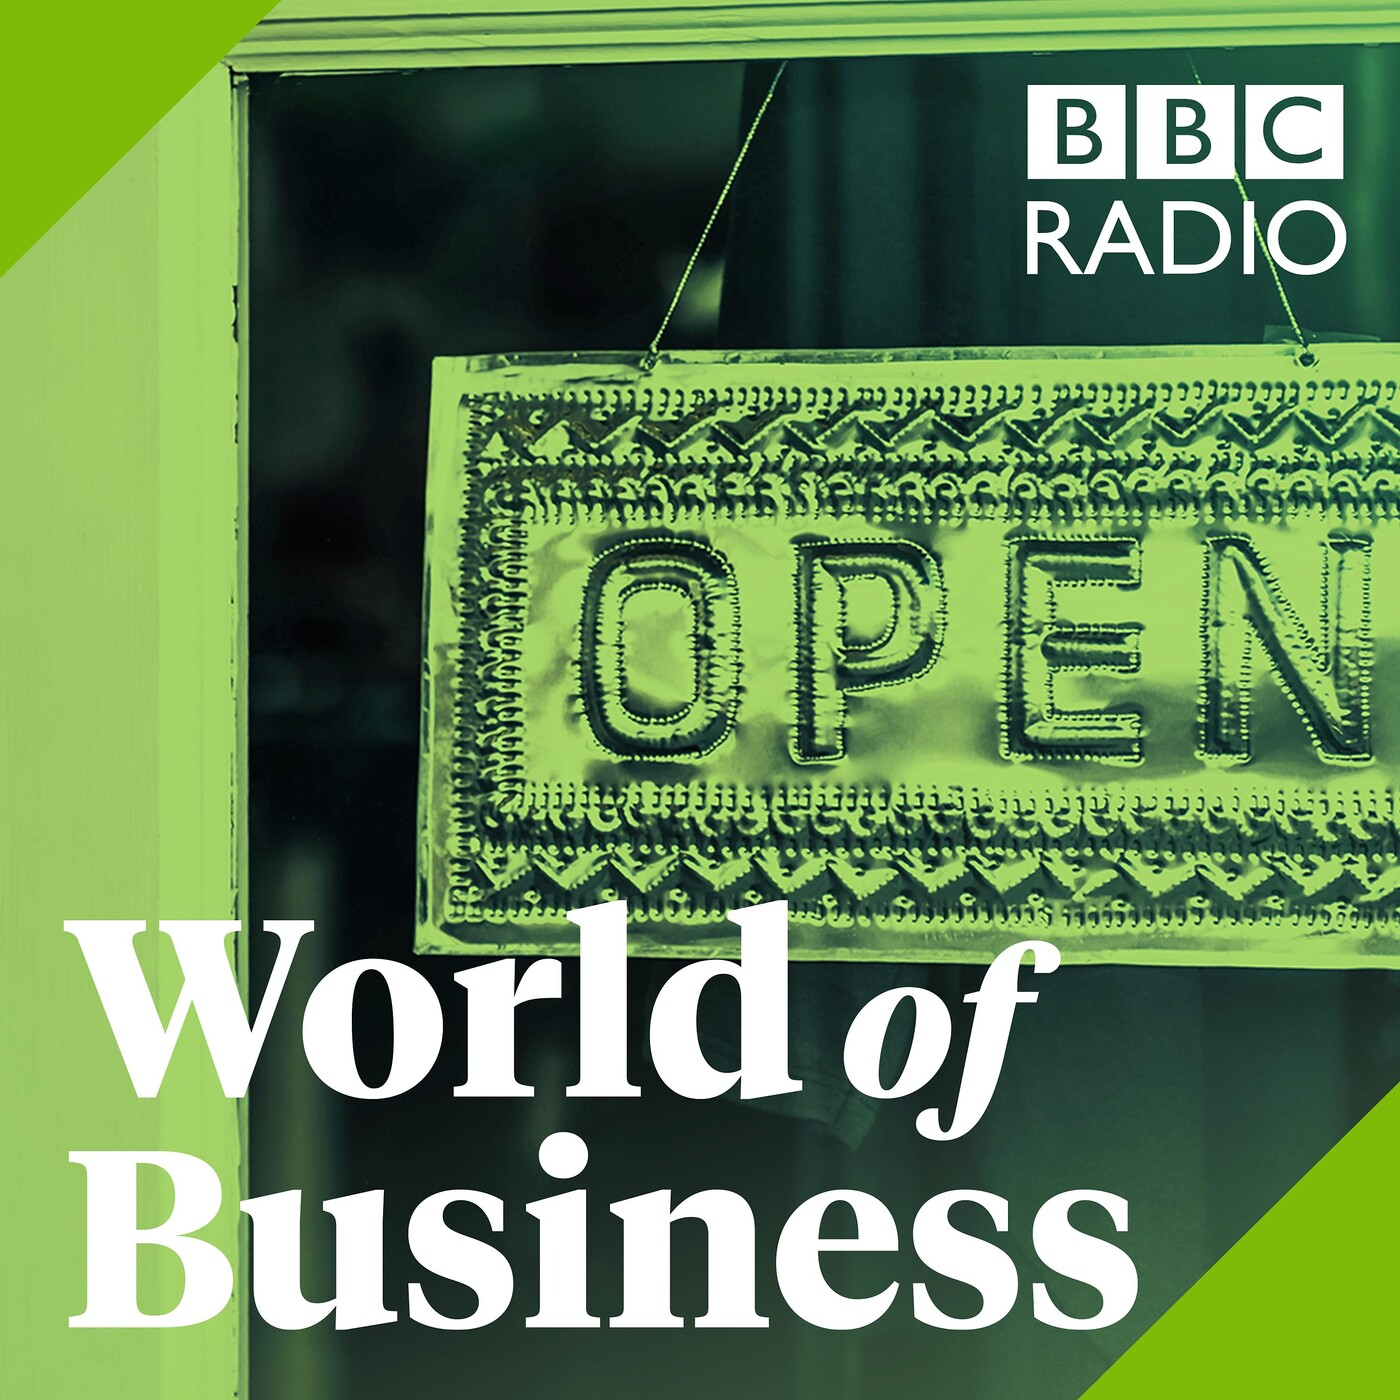 Podcast BBC - Peter Day's World of Business